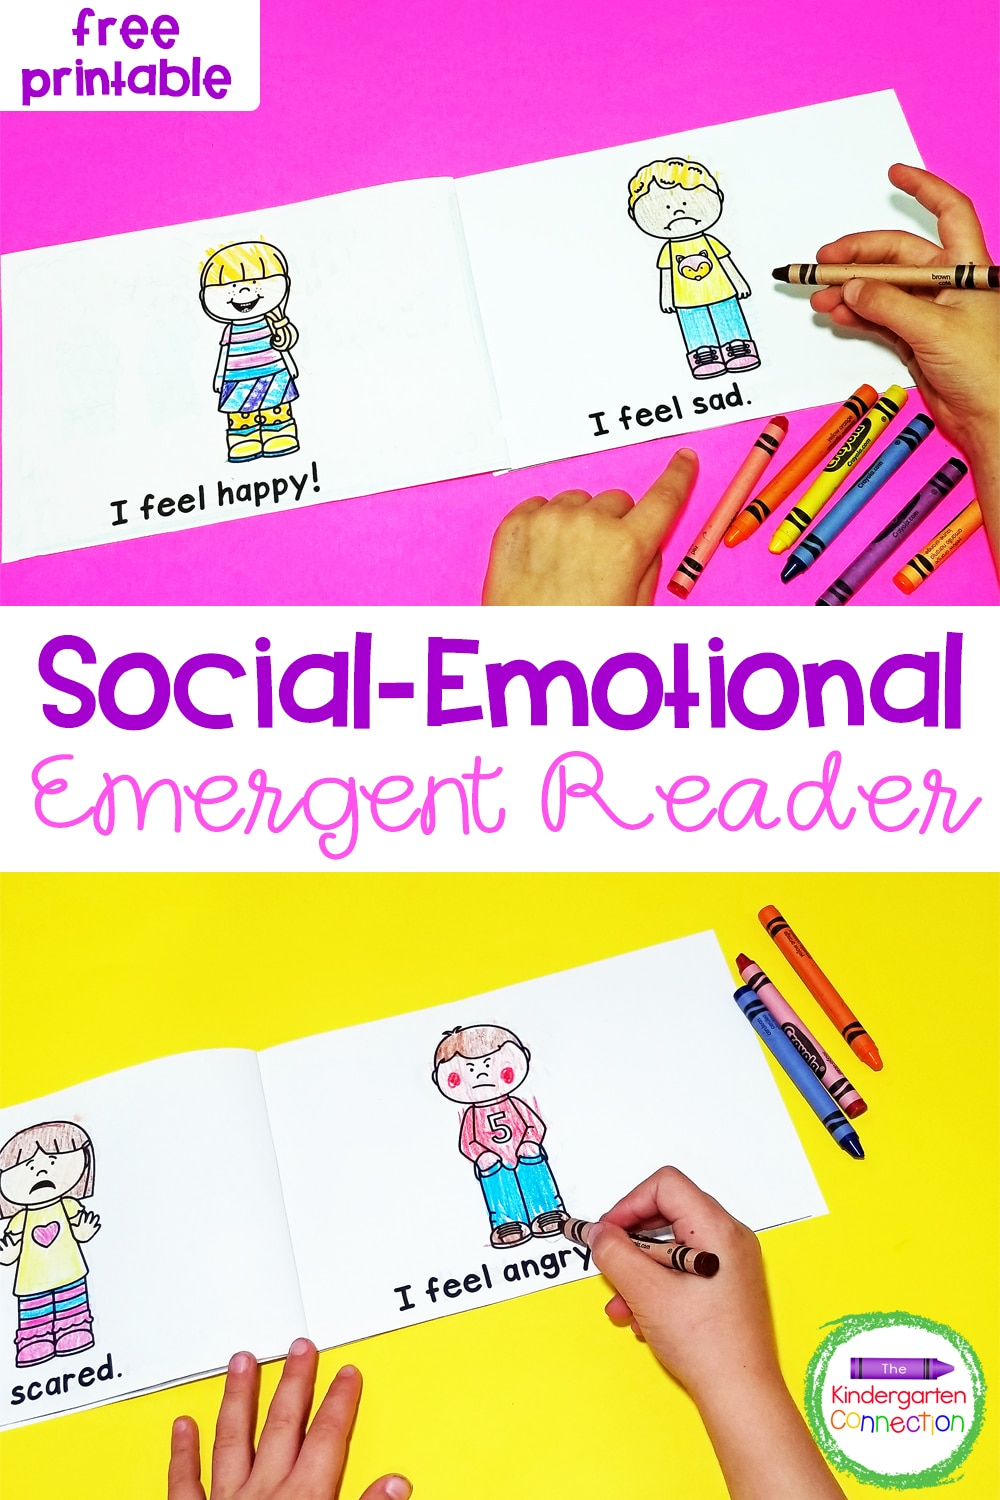 Grab this free Social-Emotional Emergent Reader to help your Pre-K and Kindergarten students learn to communicate their feelings and emotions!